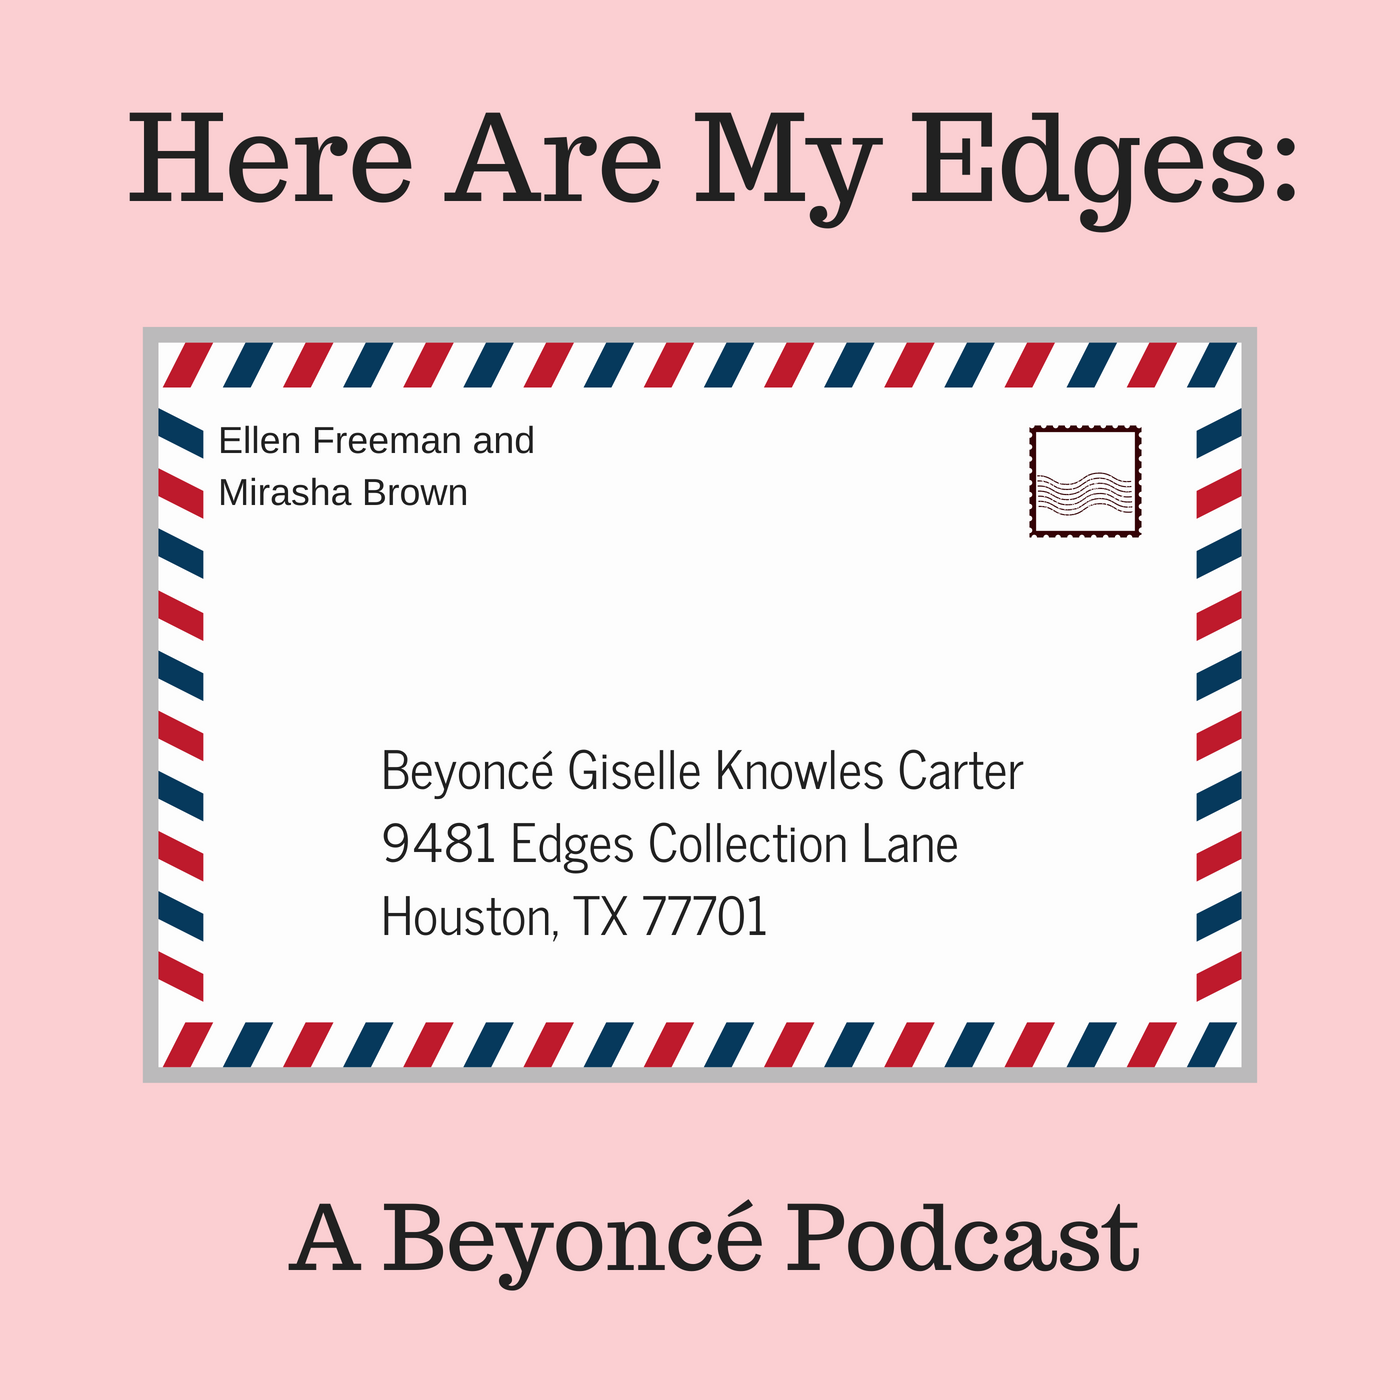 Here Are My Edges: A Beyonce Podcast | Listen Free on Castbox